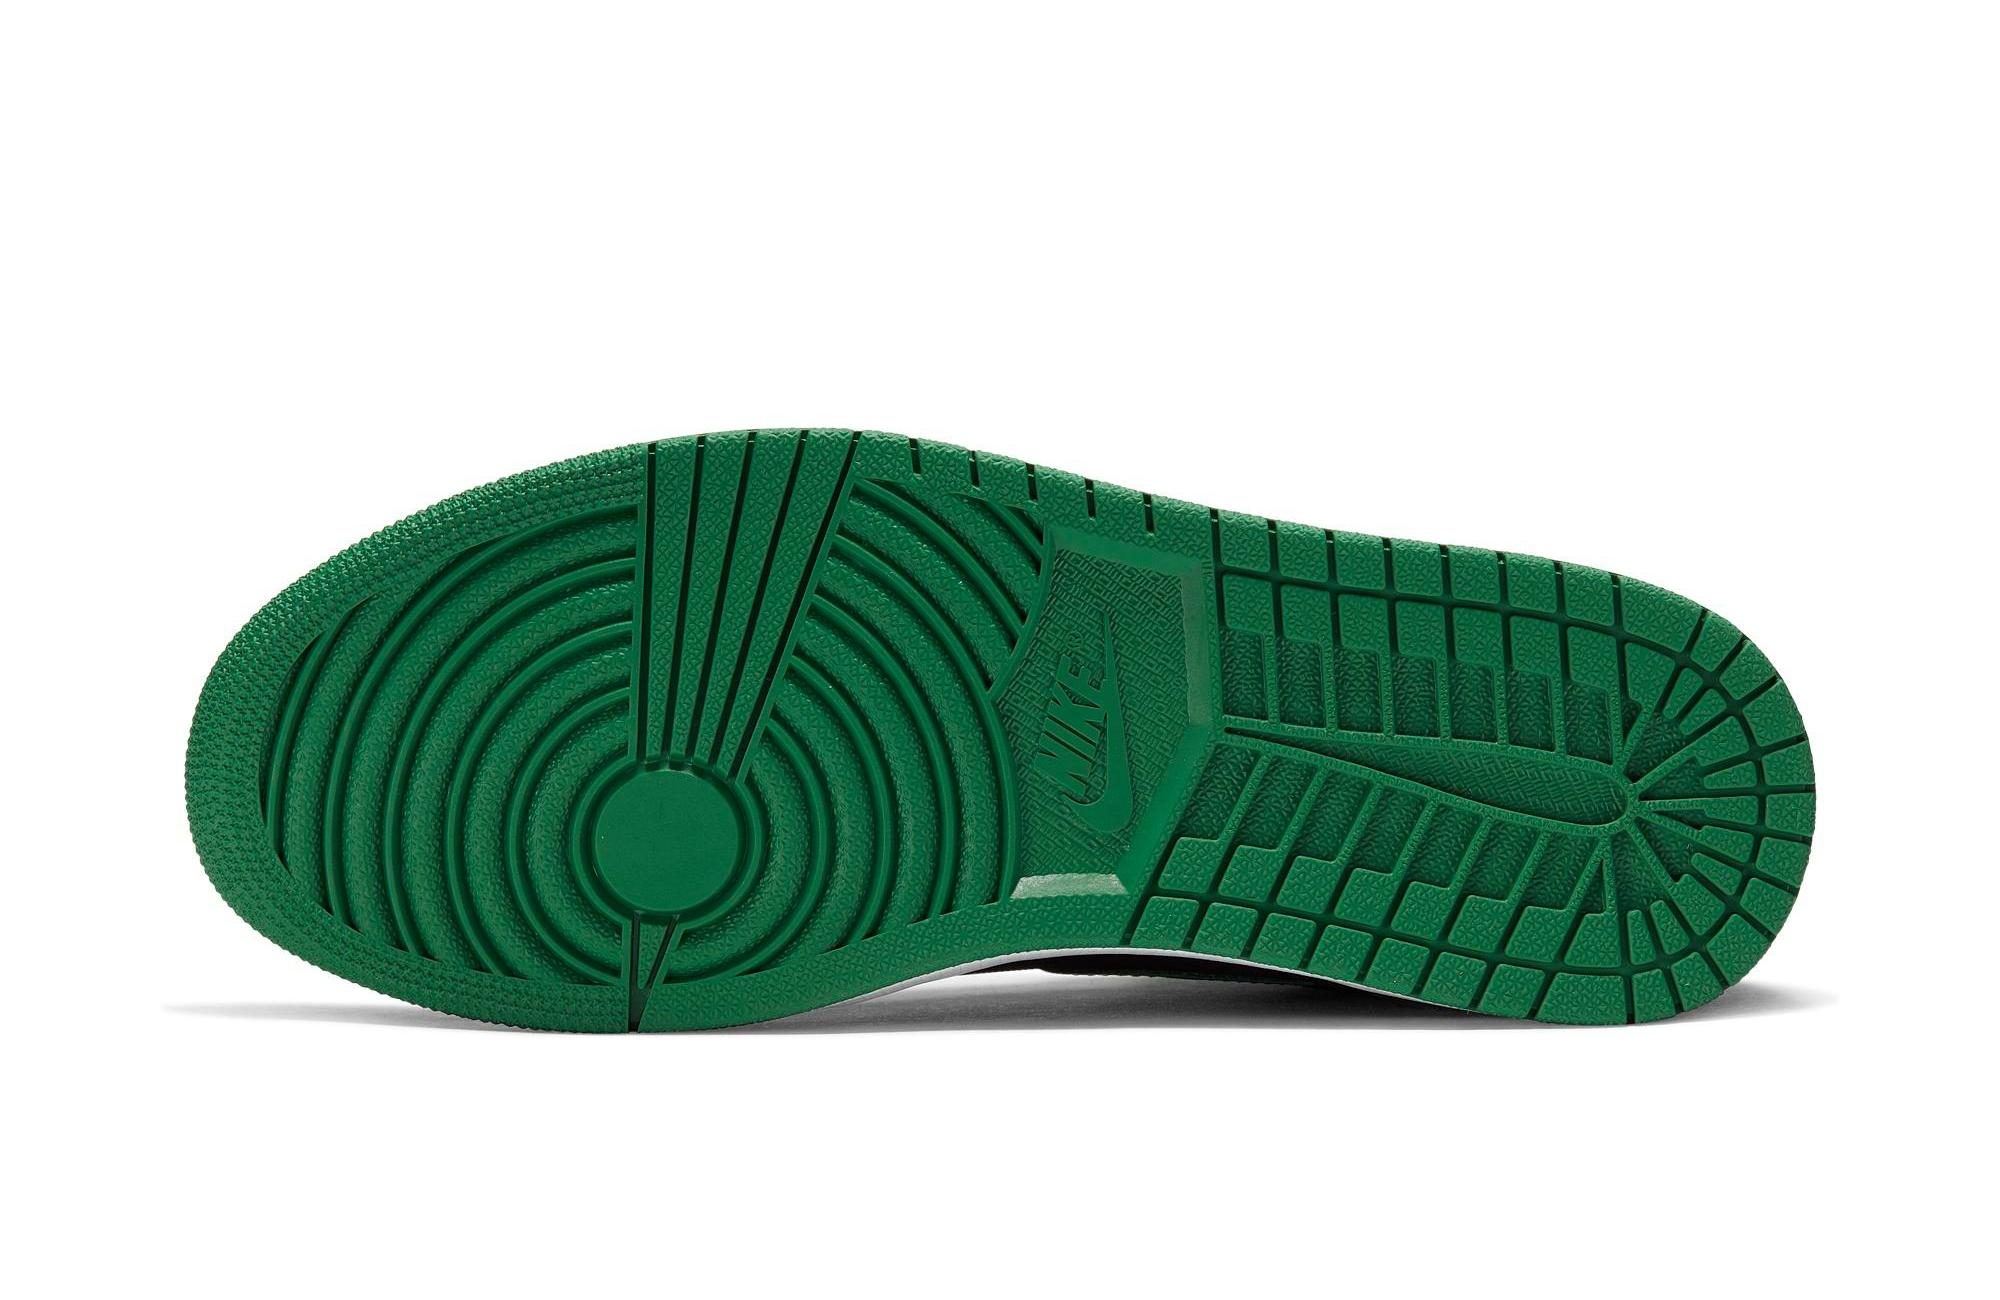 Bottom sole of Air Jordan 1 OG Pine Green